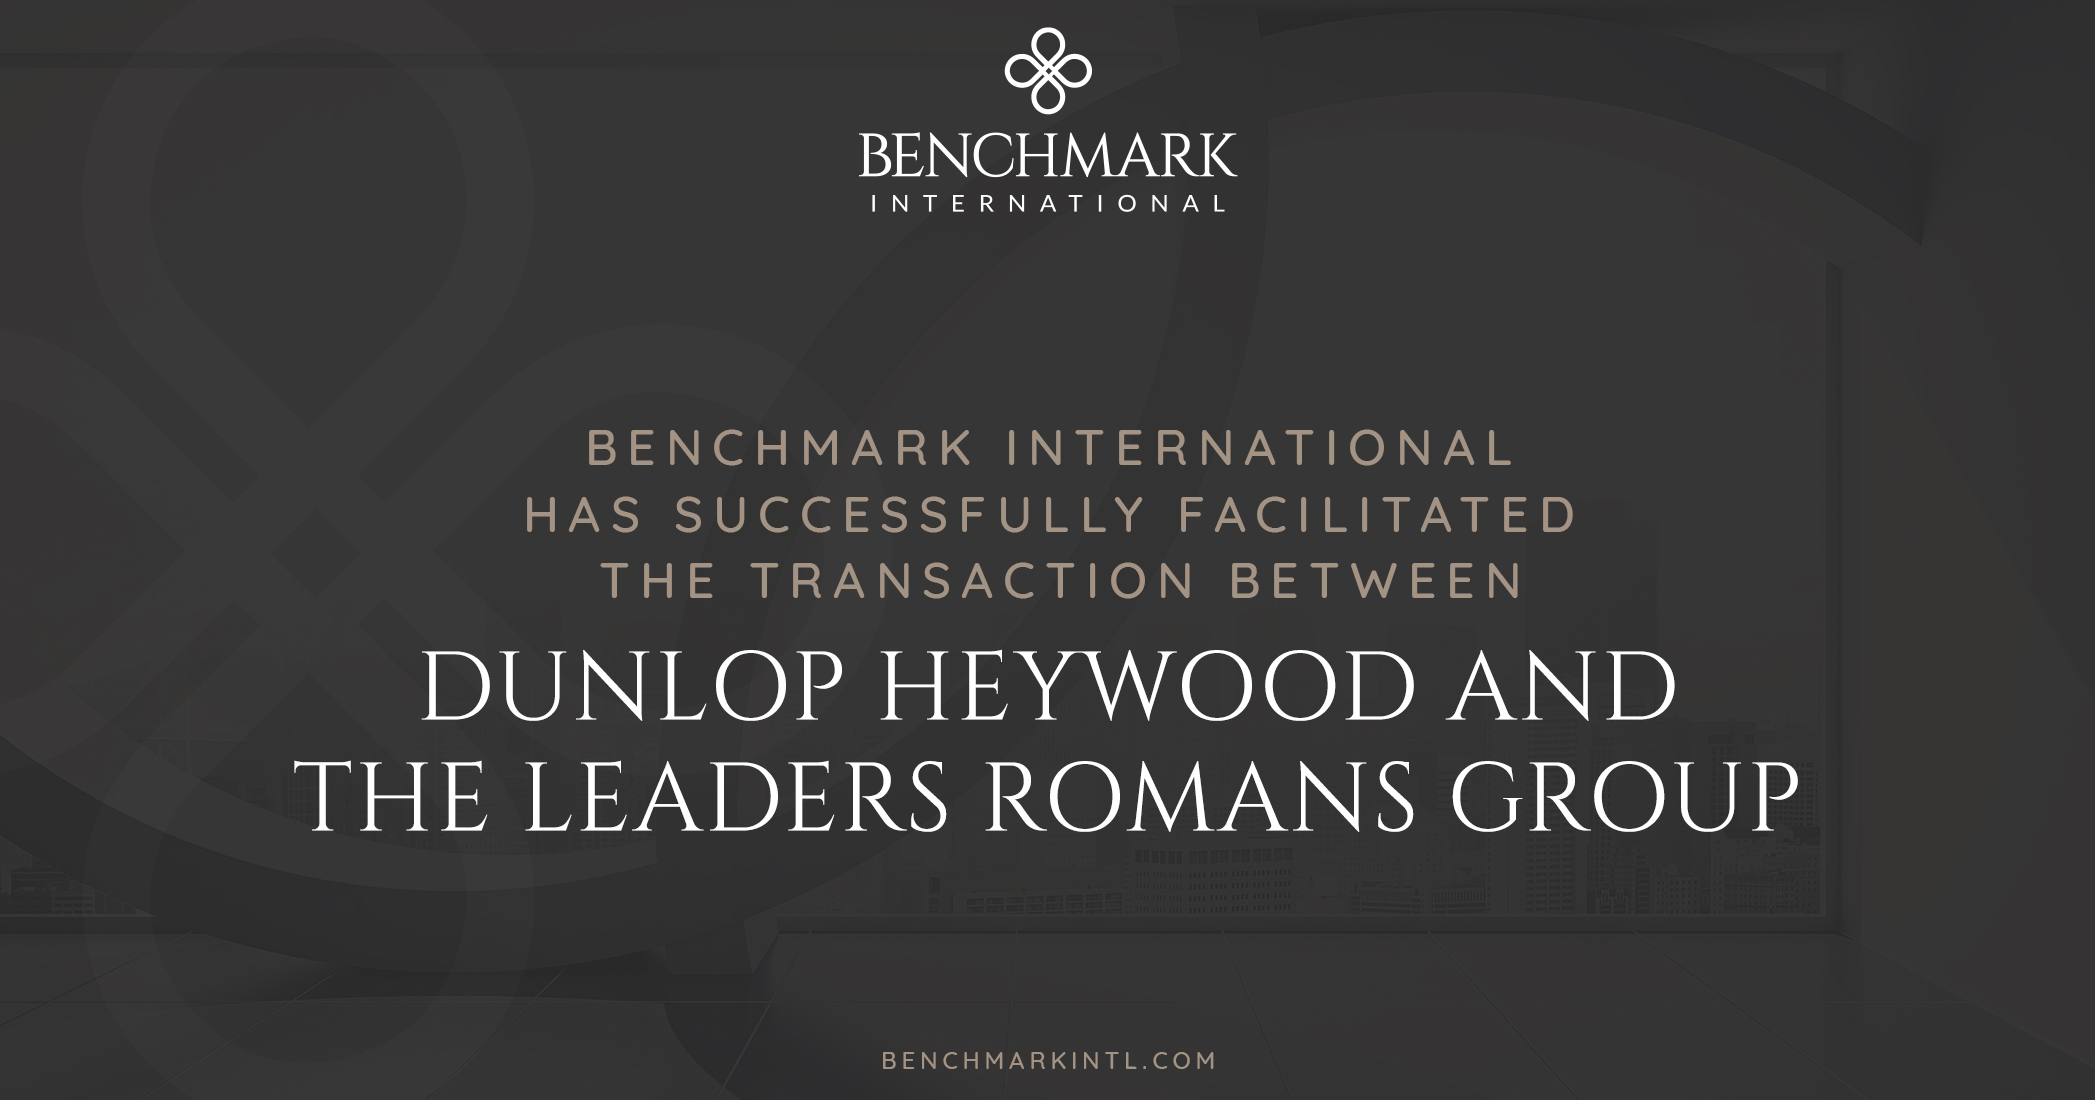 Benchmark International has Successfully Facilitated the Transaction Between Dunlop Heywood and The Leaders Romans Group